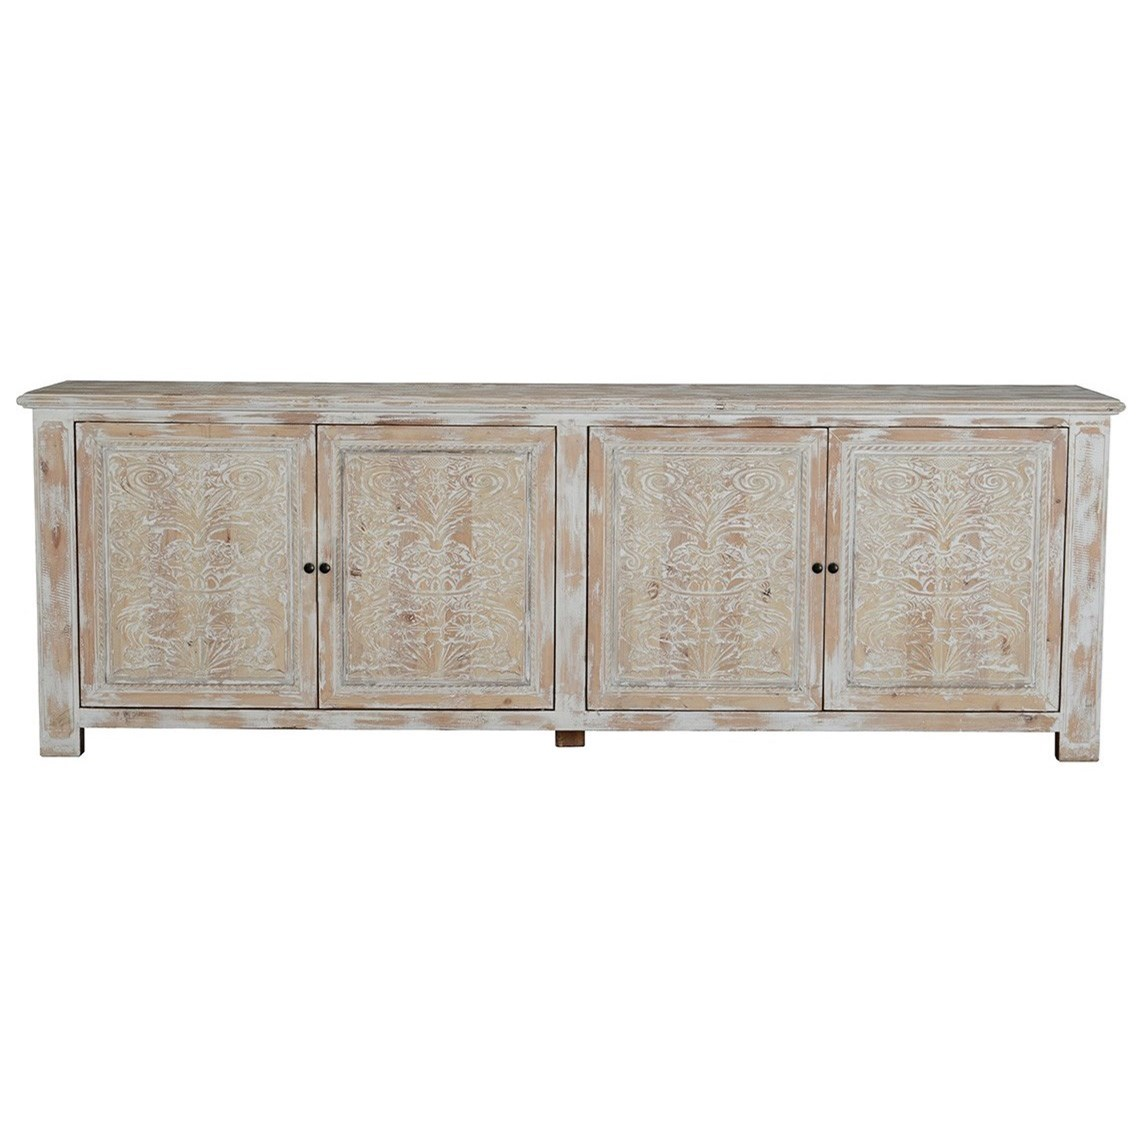 Cortland 4 Door Reclaimed Pine Sideboard by Classic Home at Baer's Furniture